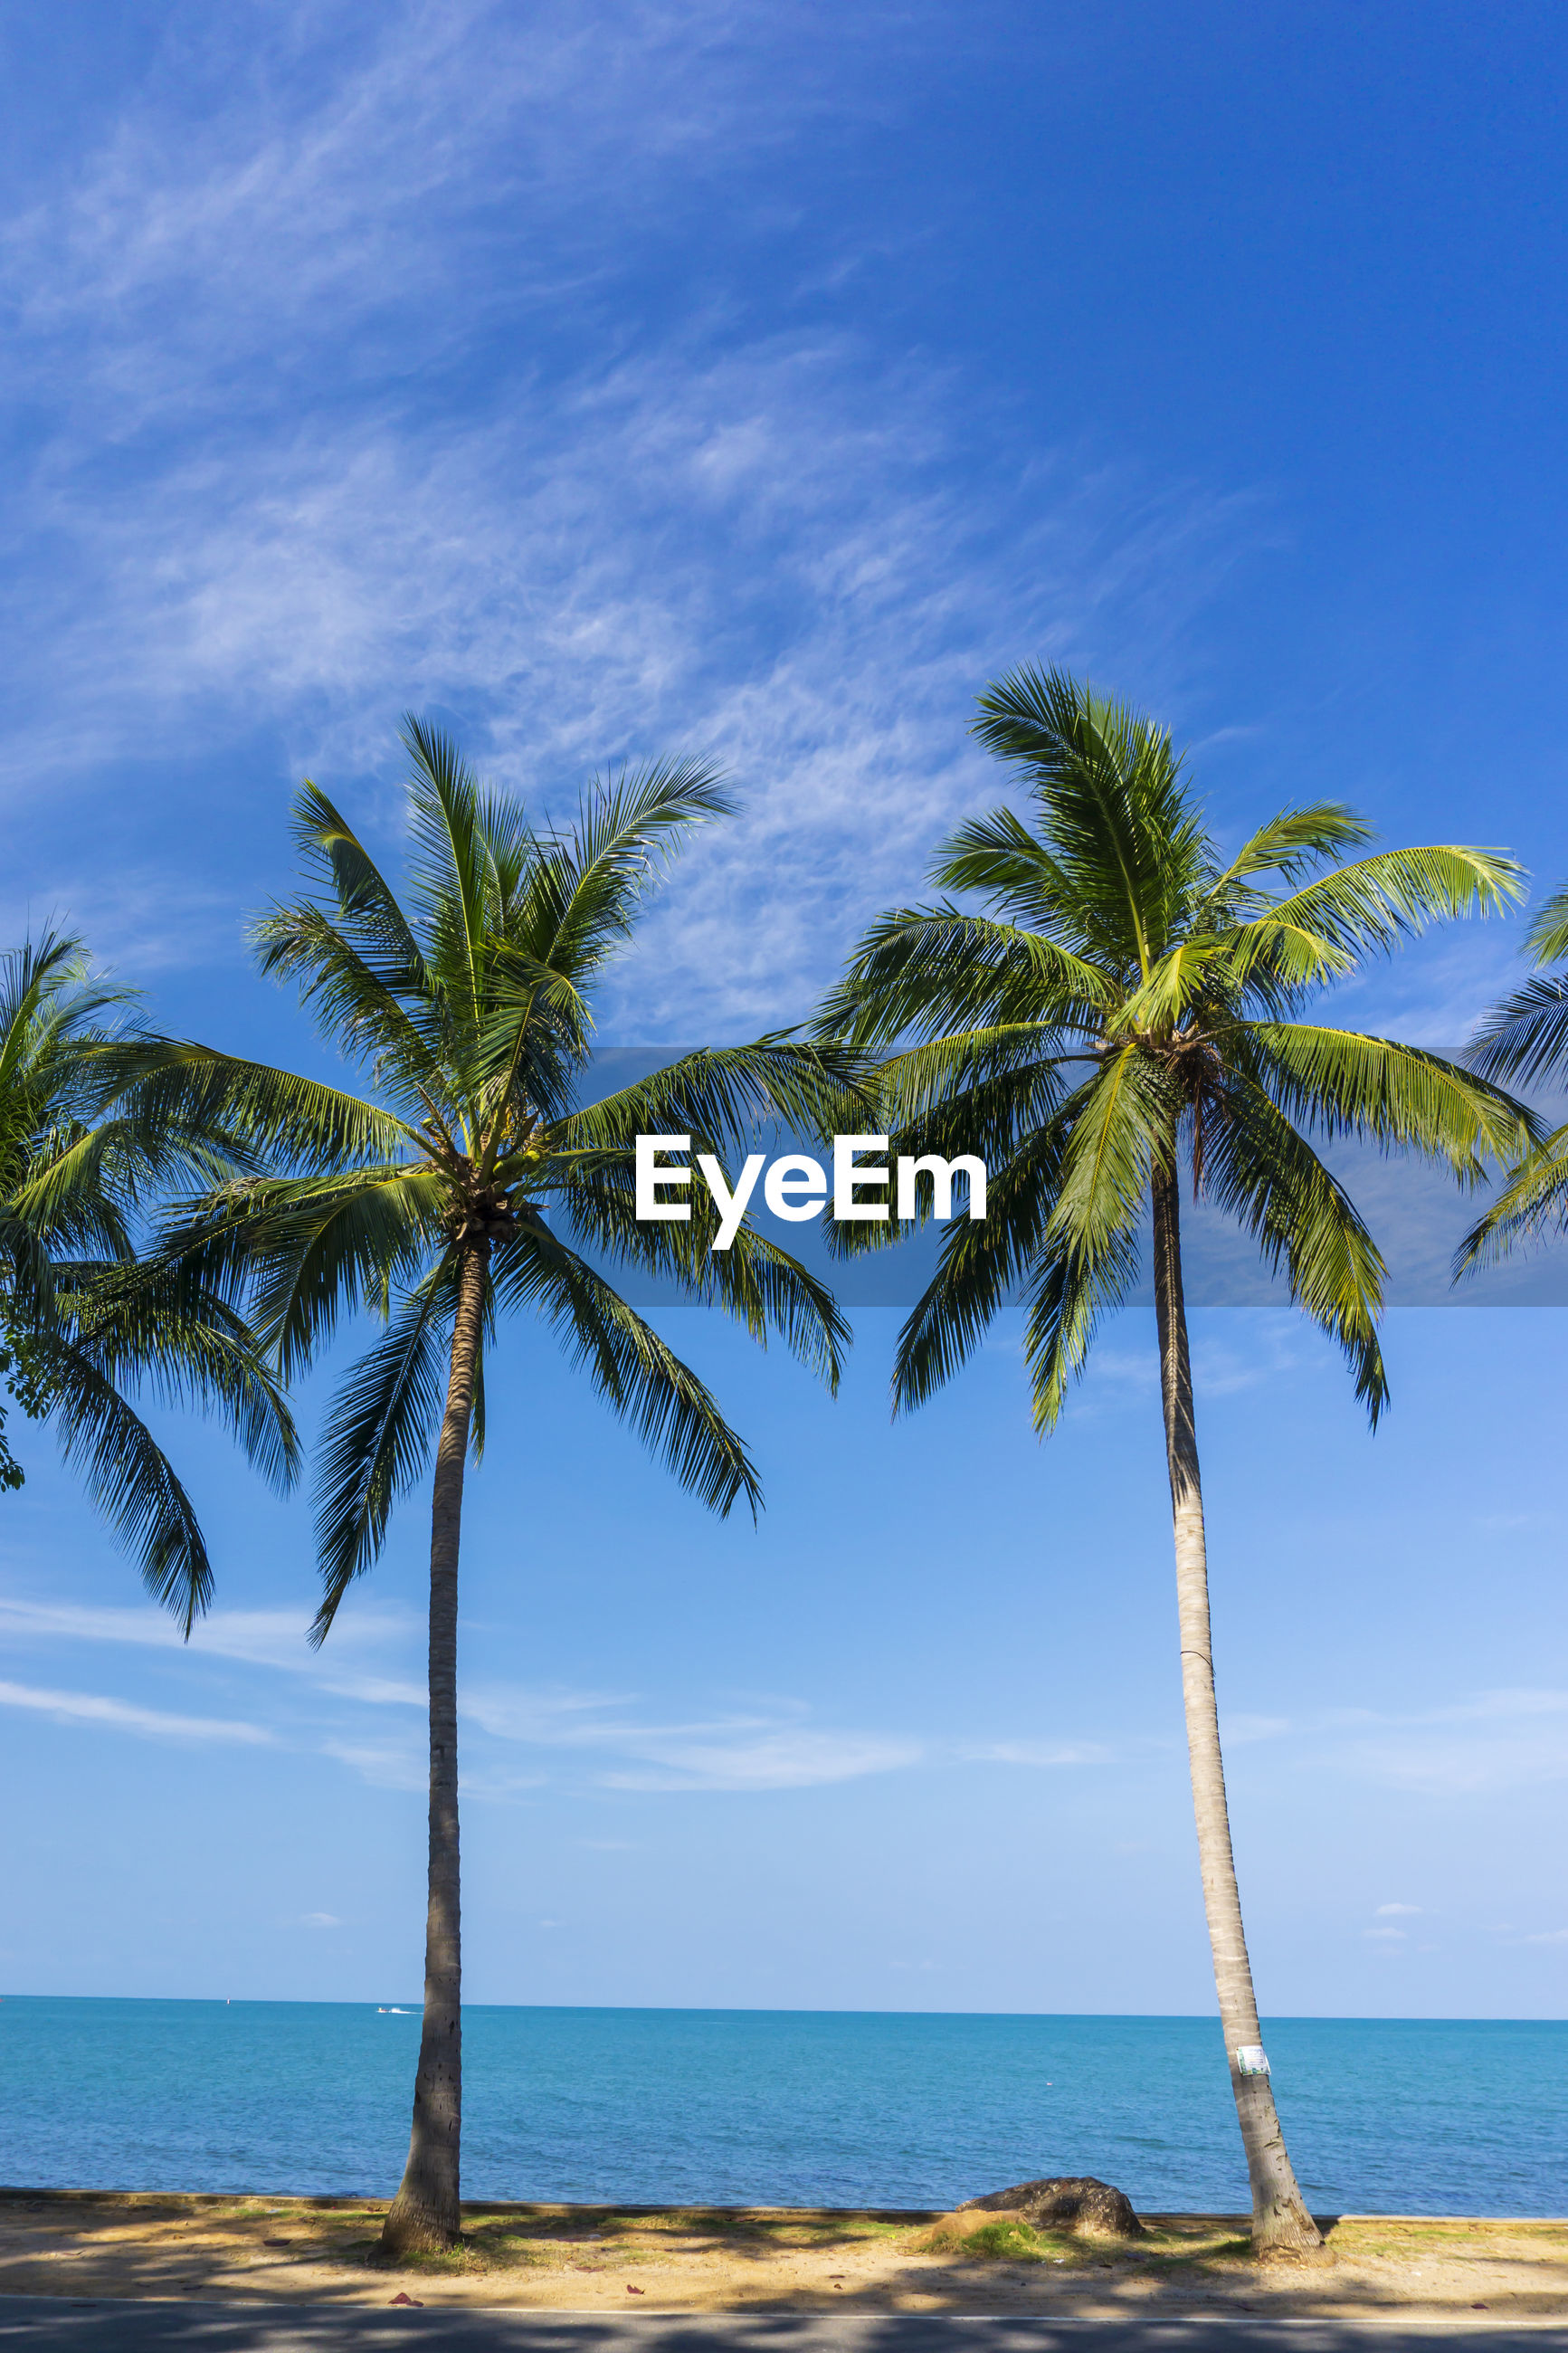 PALM TREES ON SHORE AGAINST SKY